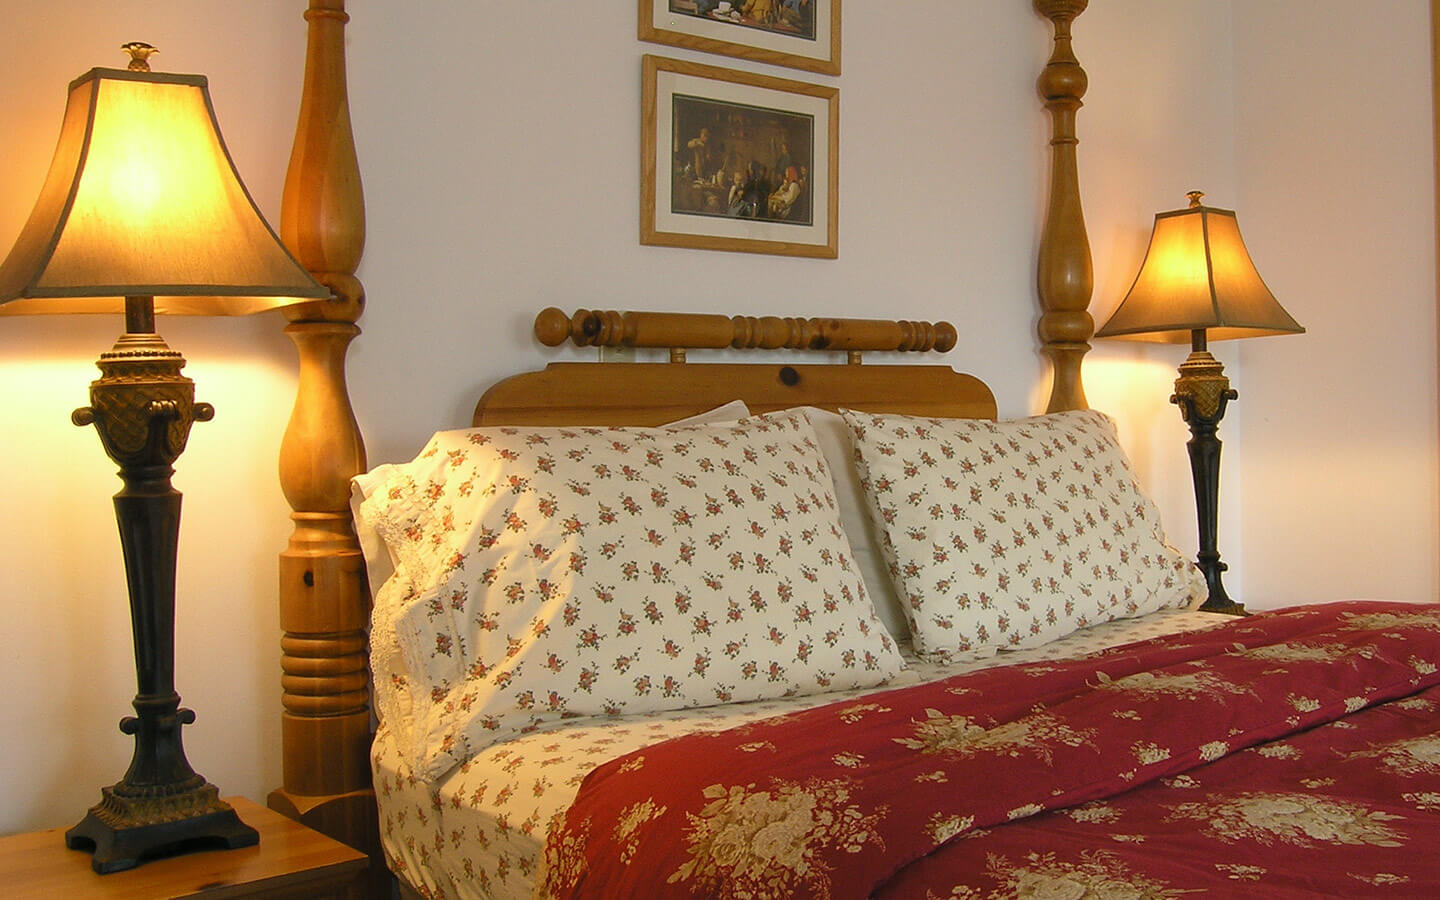 Lake of Geneva Room bed and lamps on side tables at our Lancaster County B&B